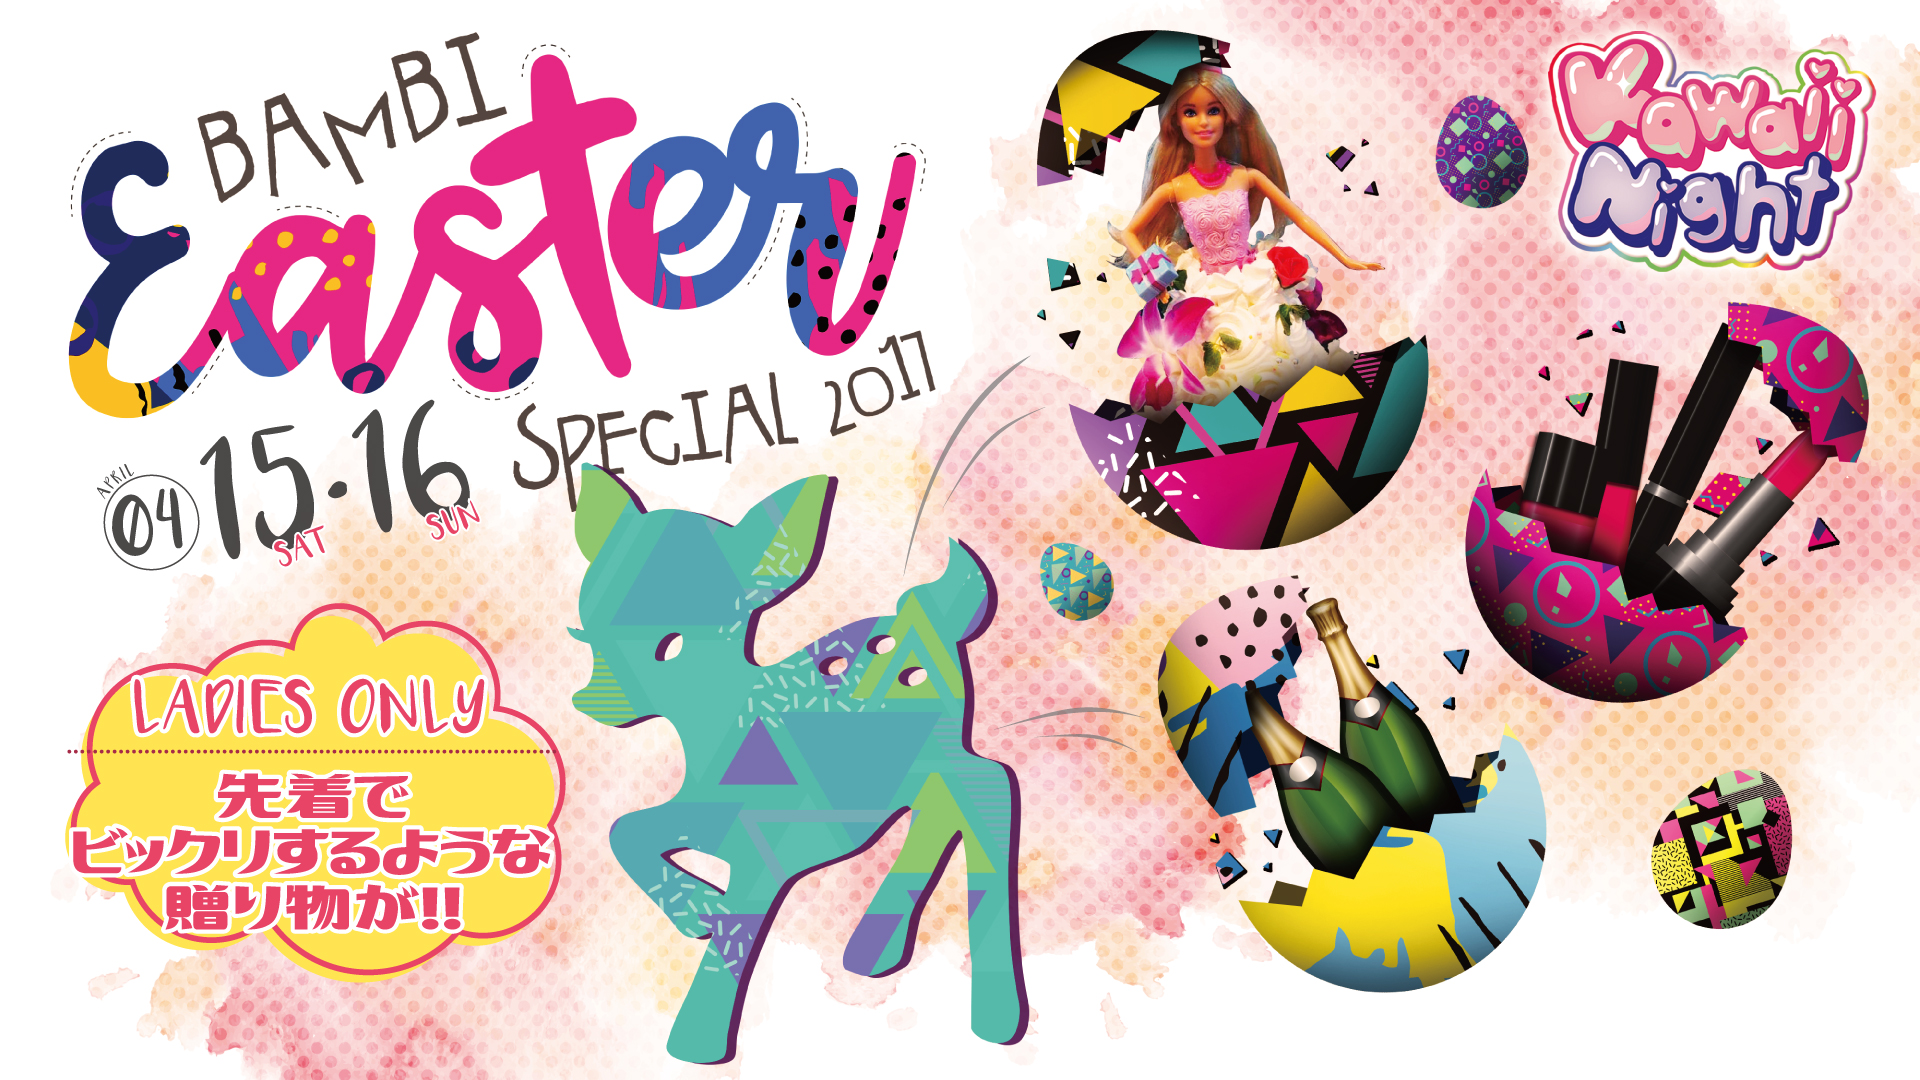 BAMBI EASTER SPECIAL 2017